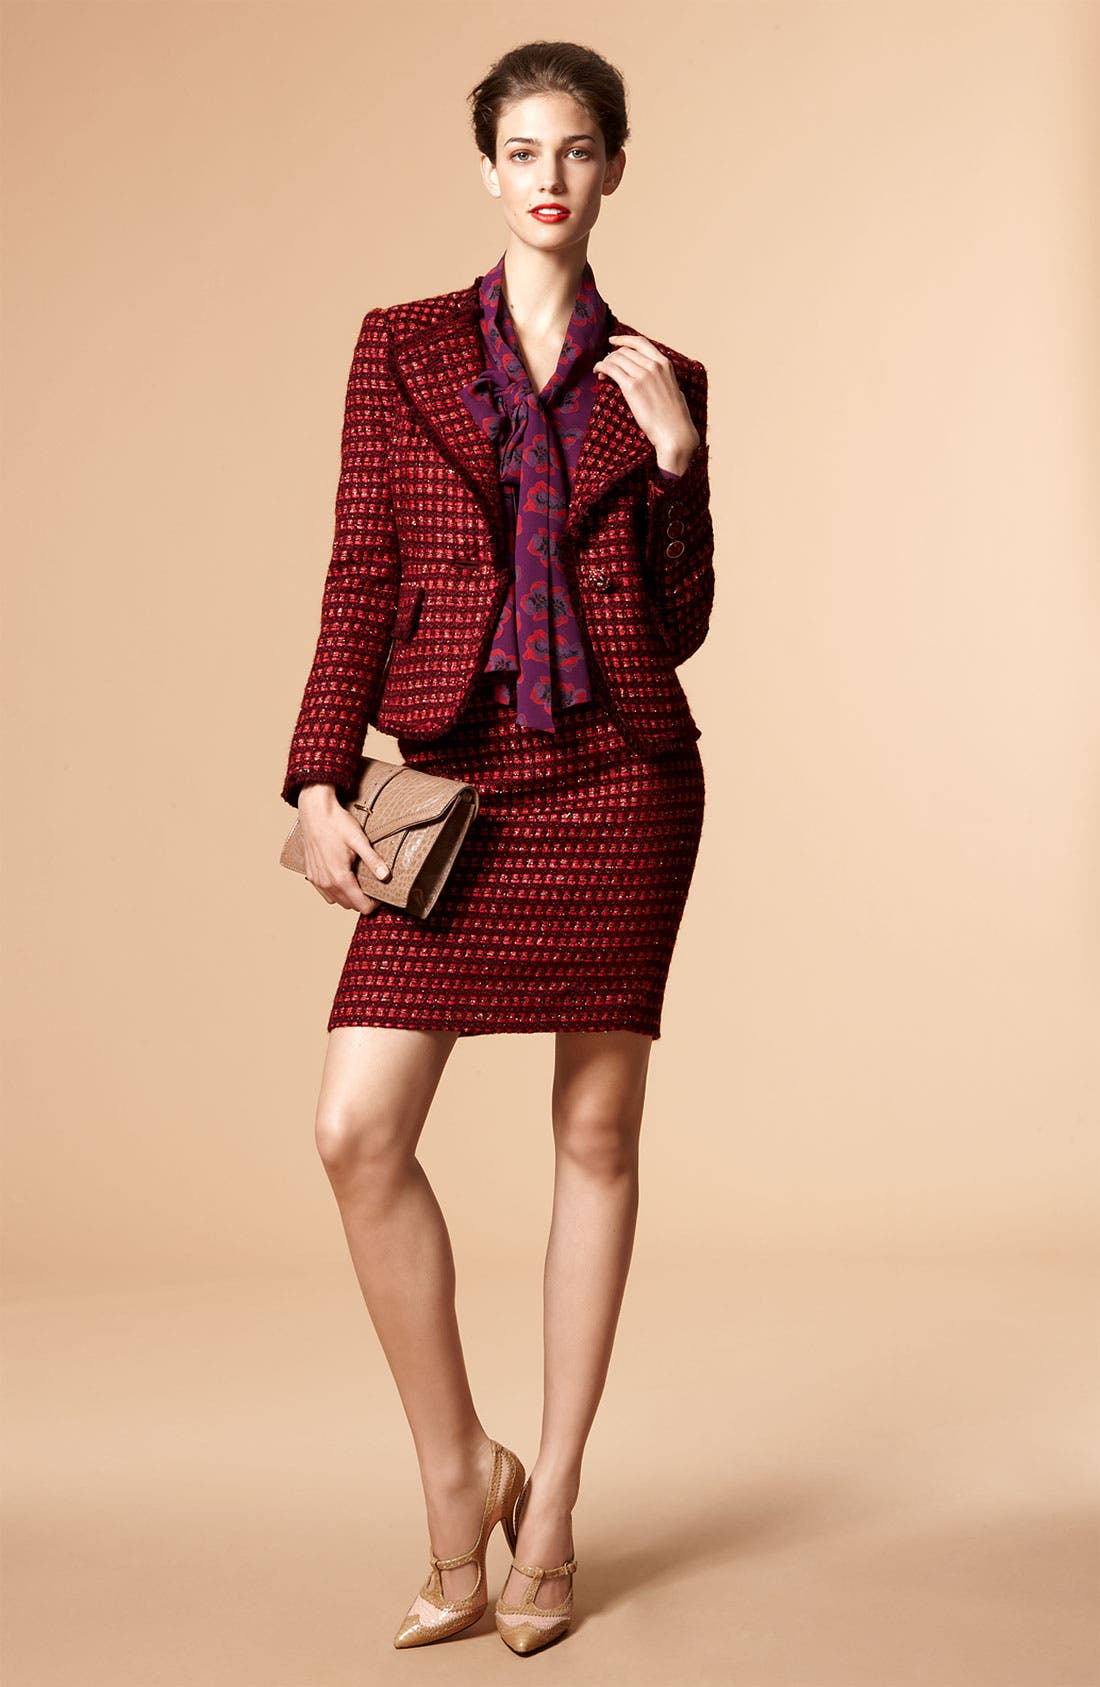 Alternate Image 1 Selected - Tory Burch Jacket, Blouse & Skirt